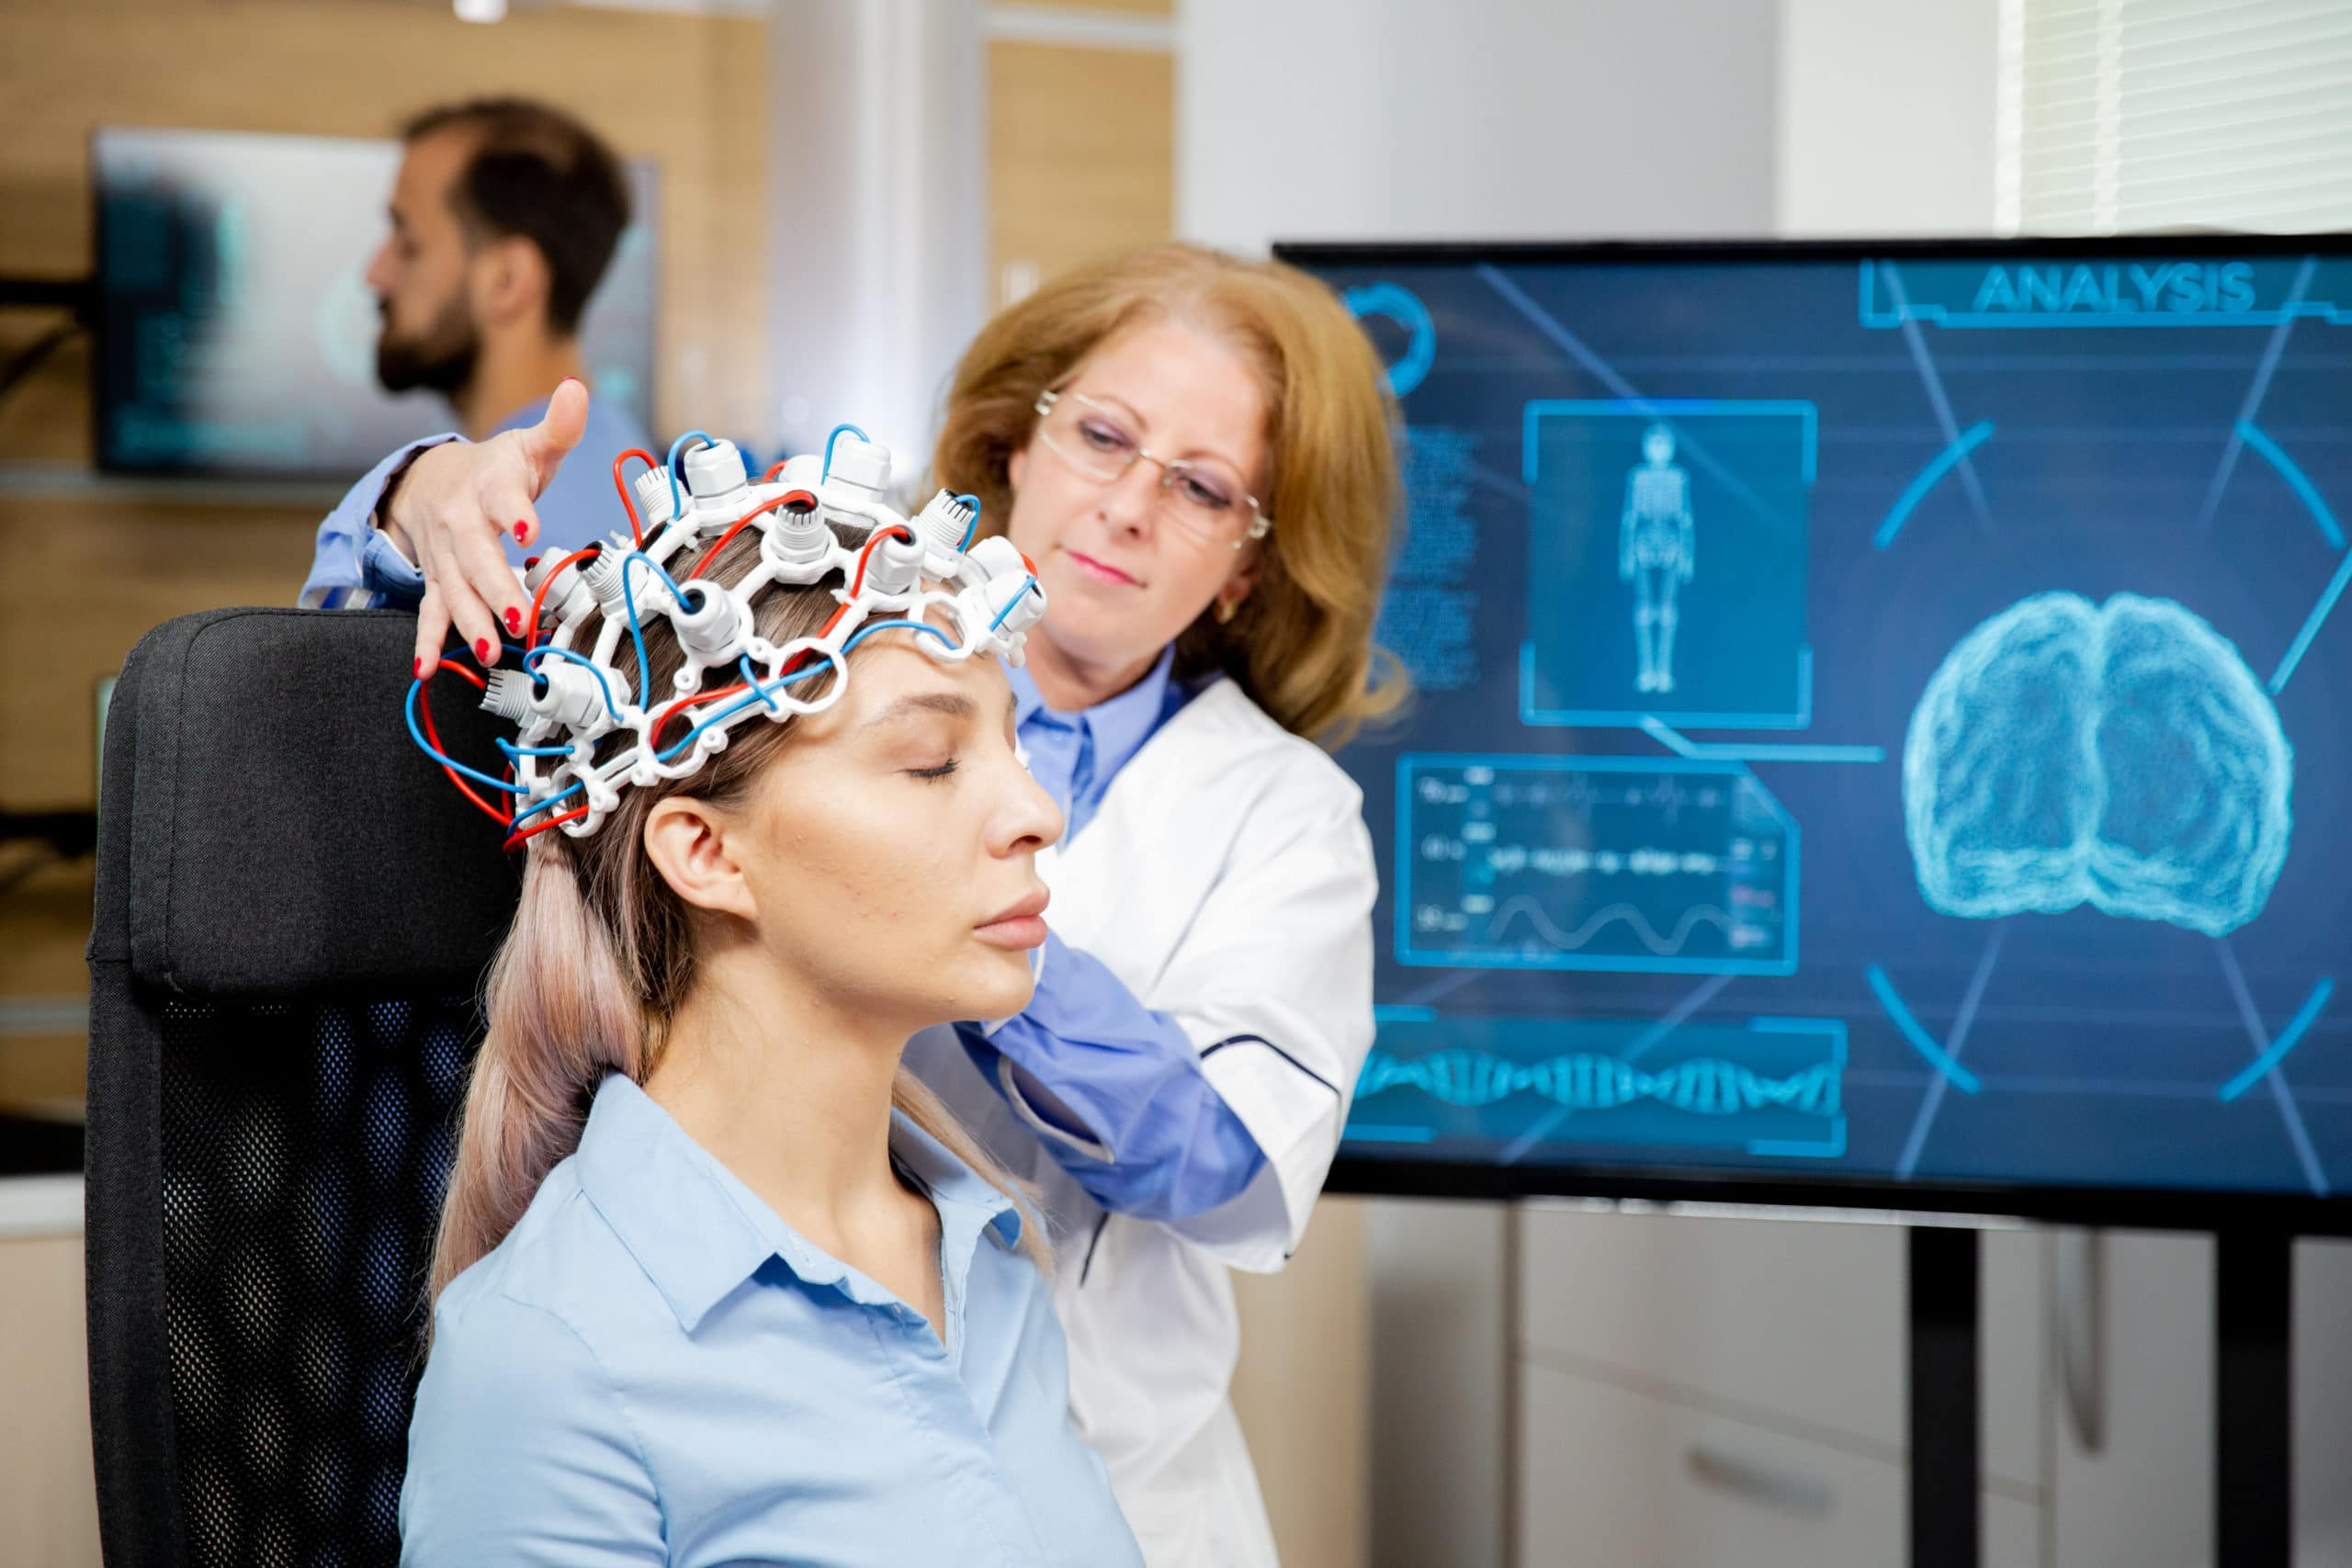 Doctor arranging neurology scanning headset for tests on a female patient. Scanning machine